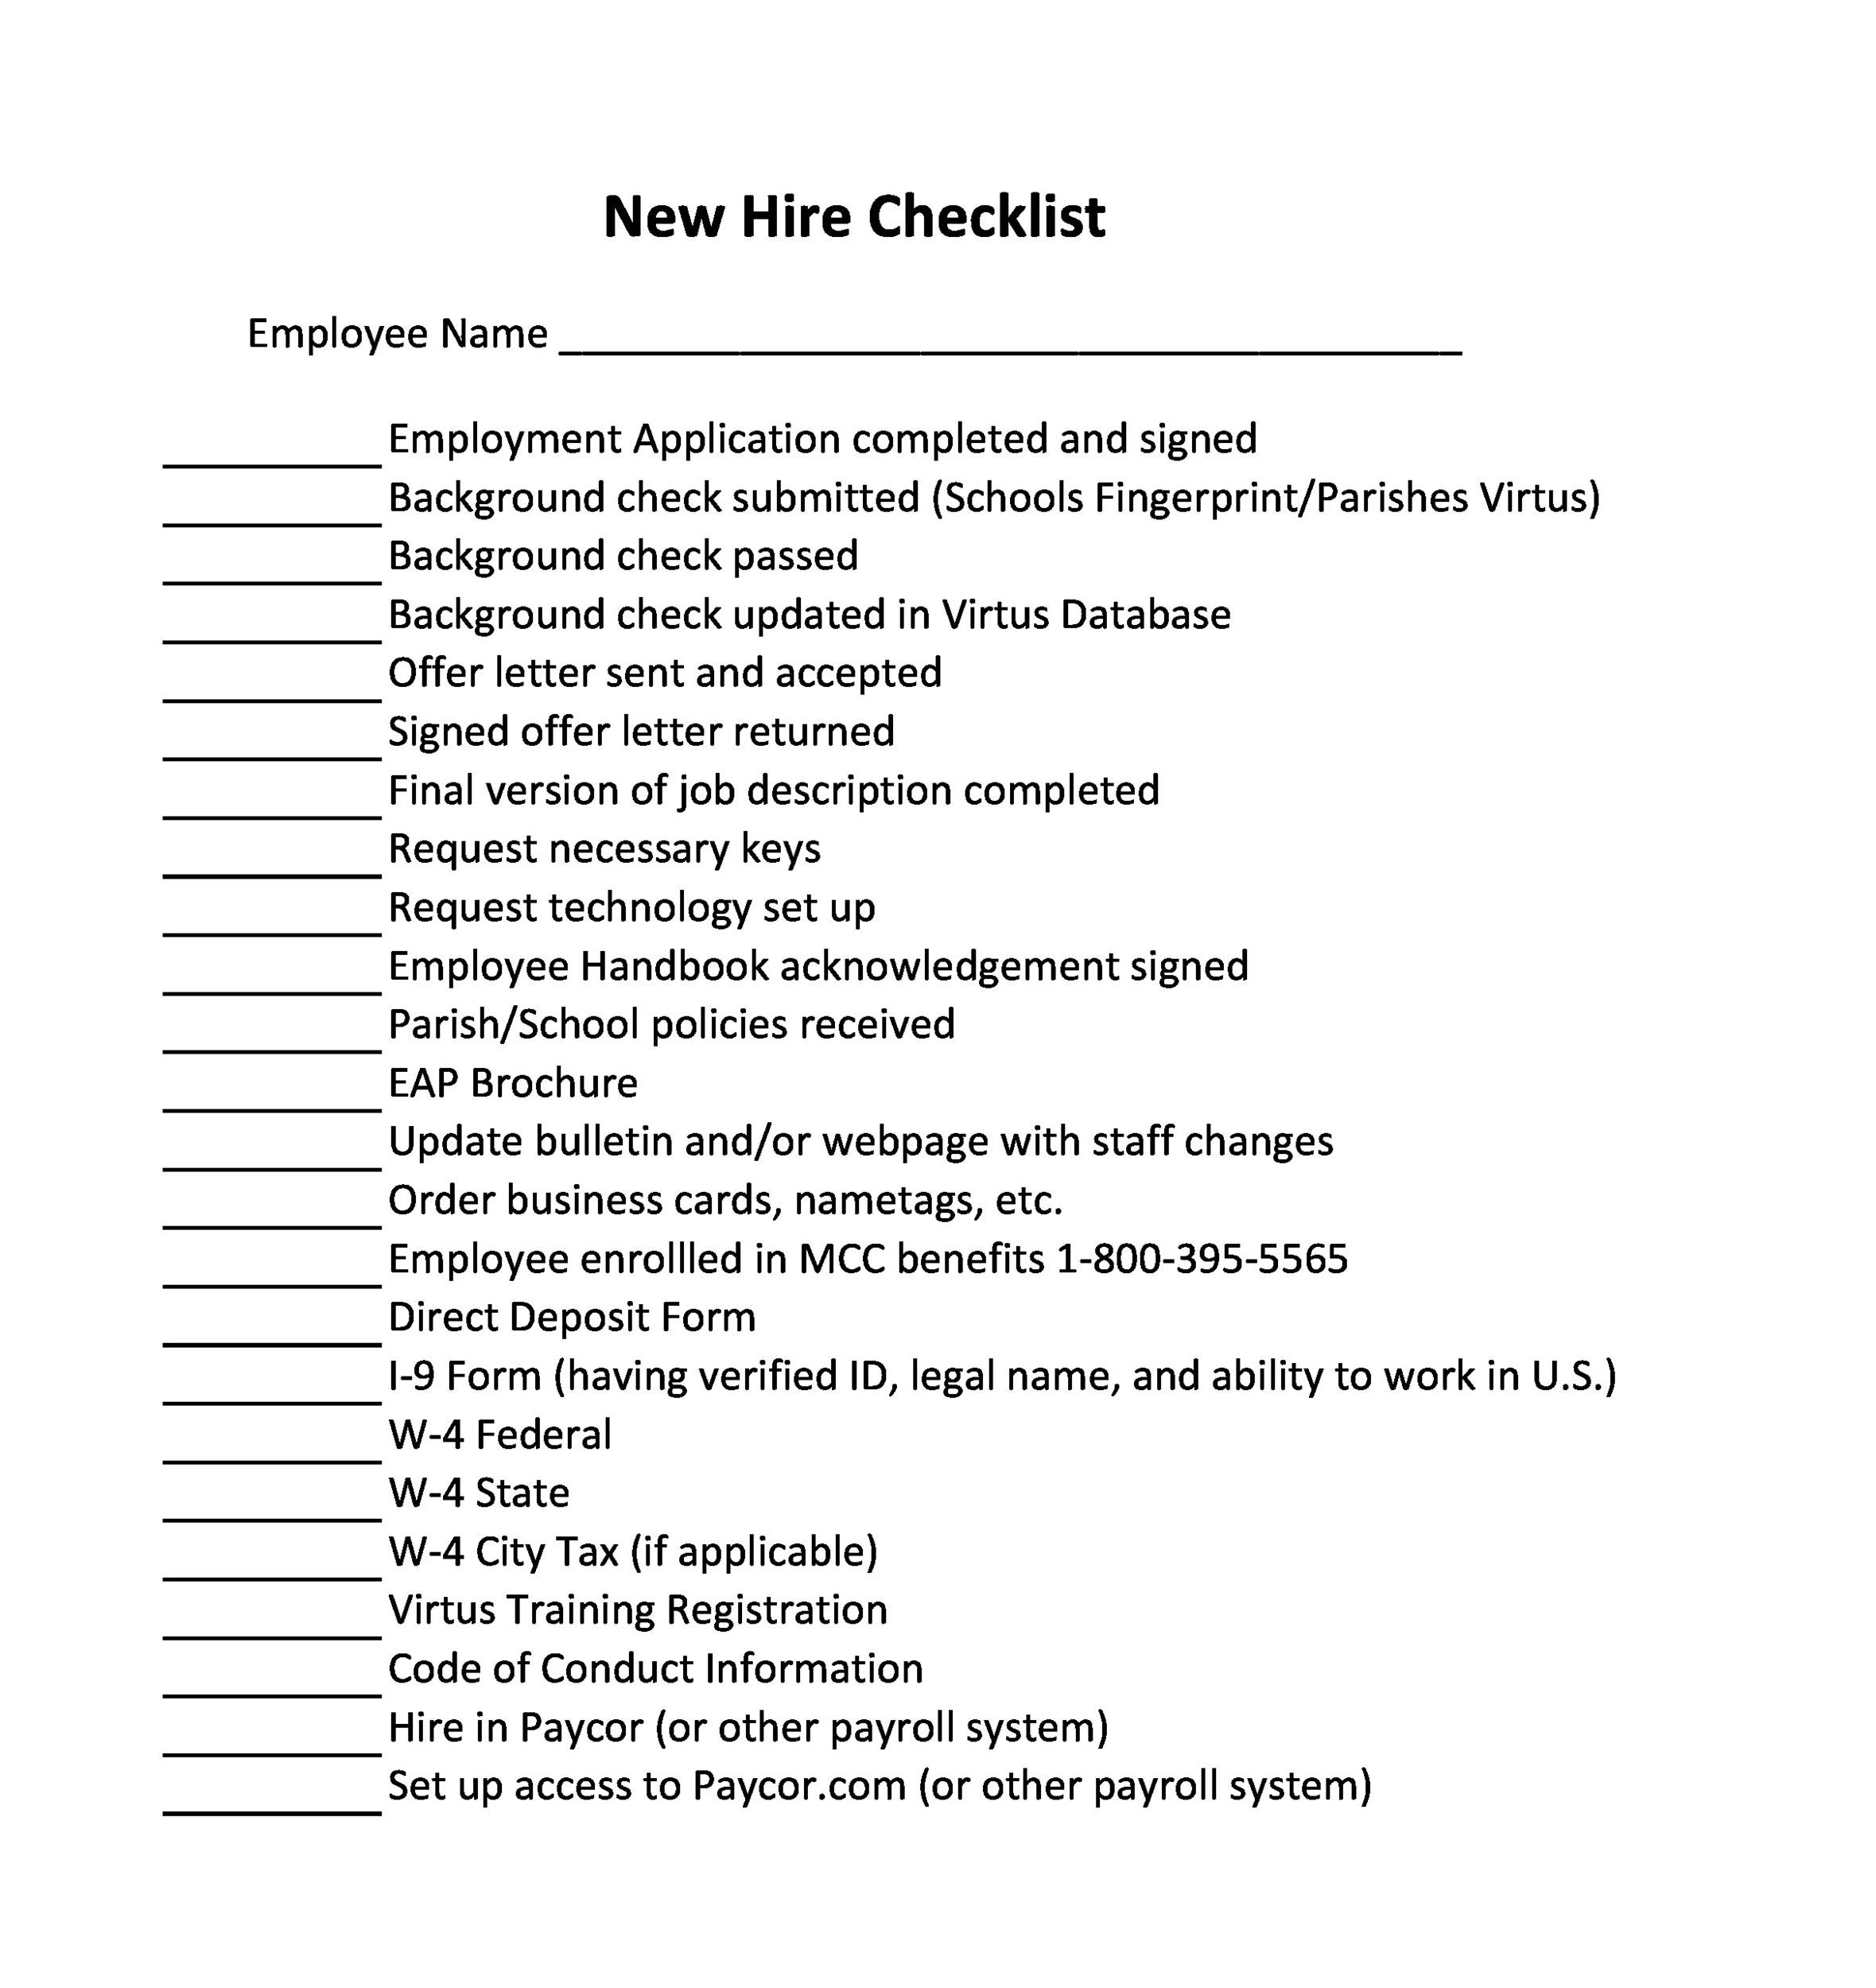 Free new hire checklist 50